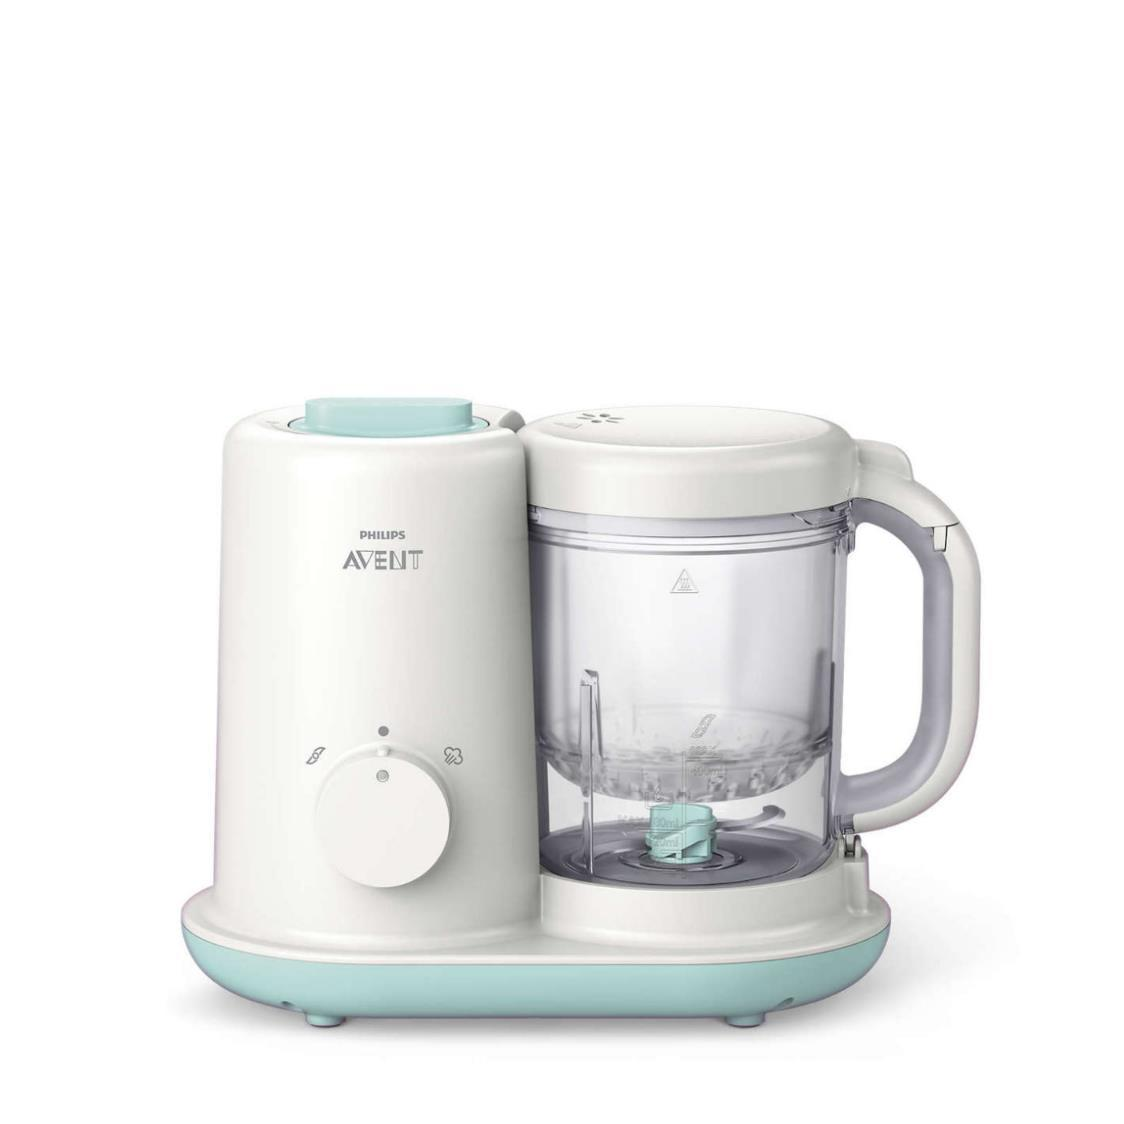 2-In-1 Baby Steamer And Blender Entry